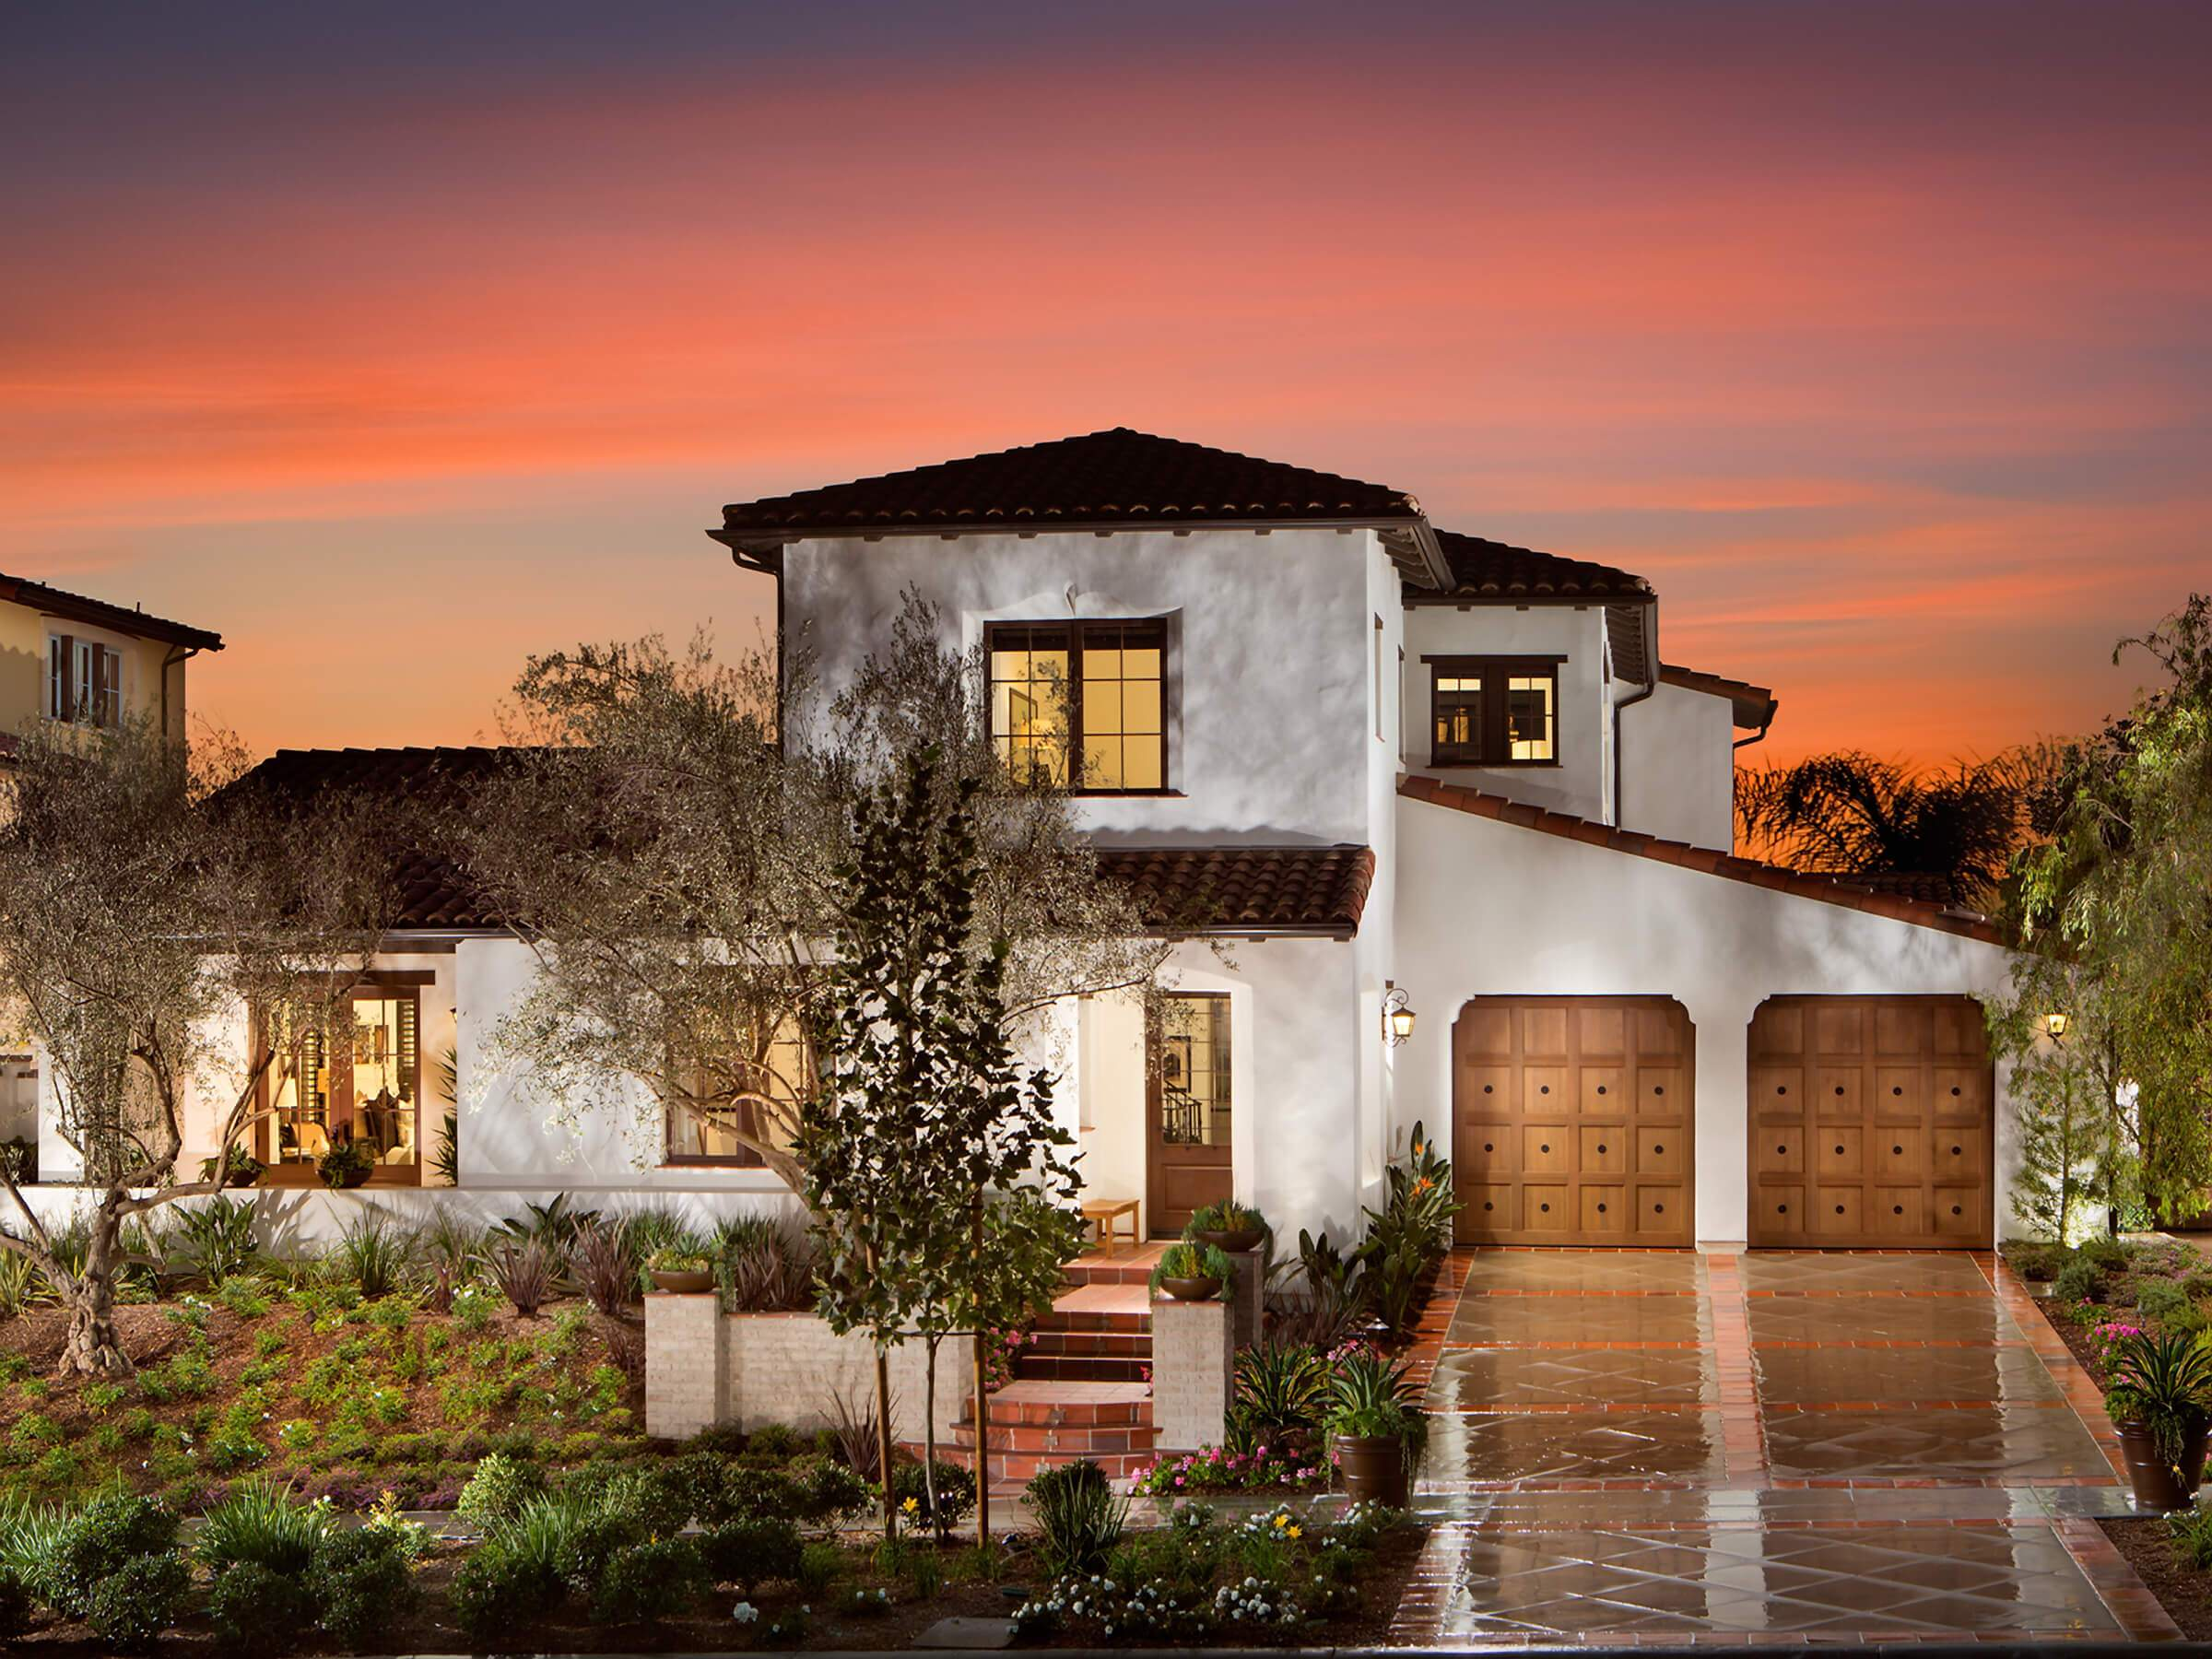 'Single Family' building or community at 'Artisan Collection at Covenant Hills 63 Bell Pasture Road Ladera Ranch, California 92694 United States'